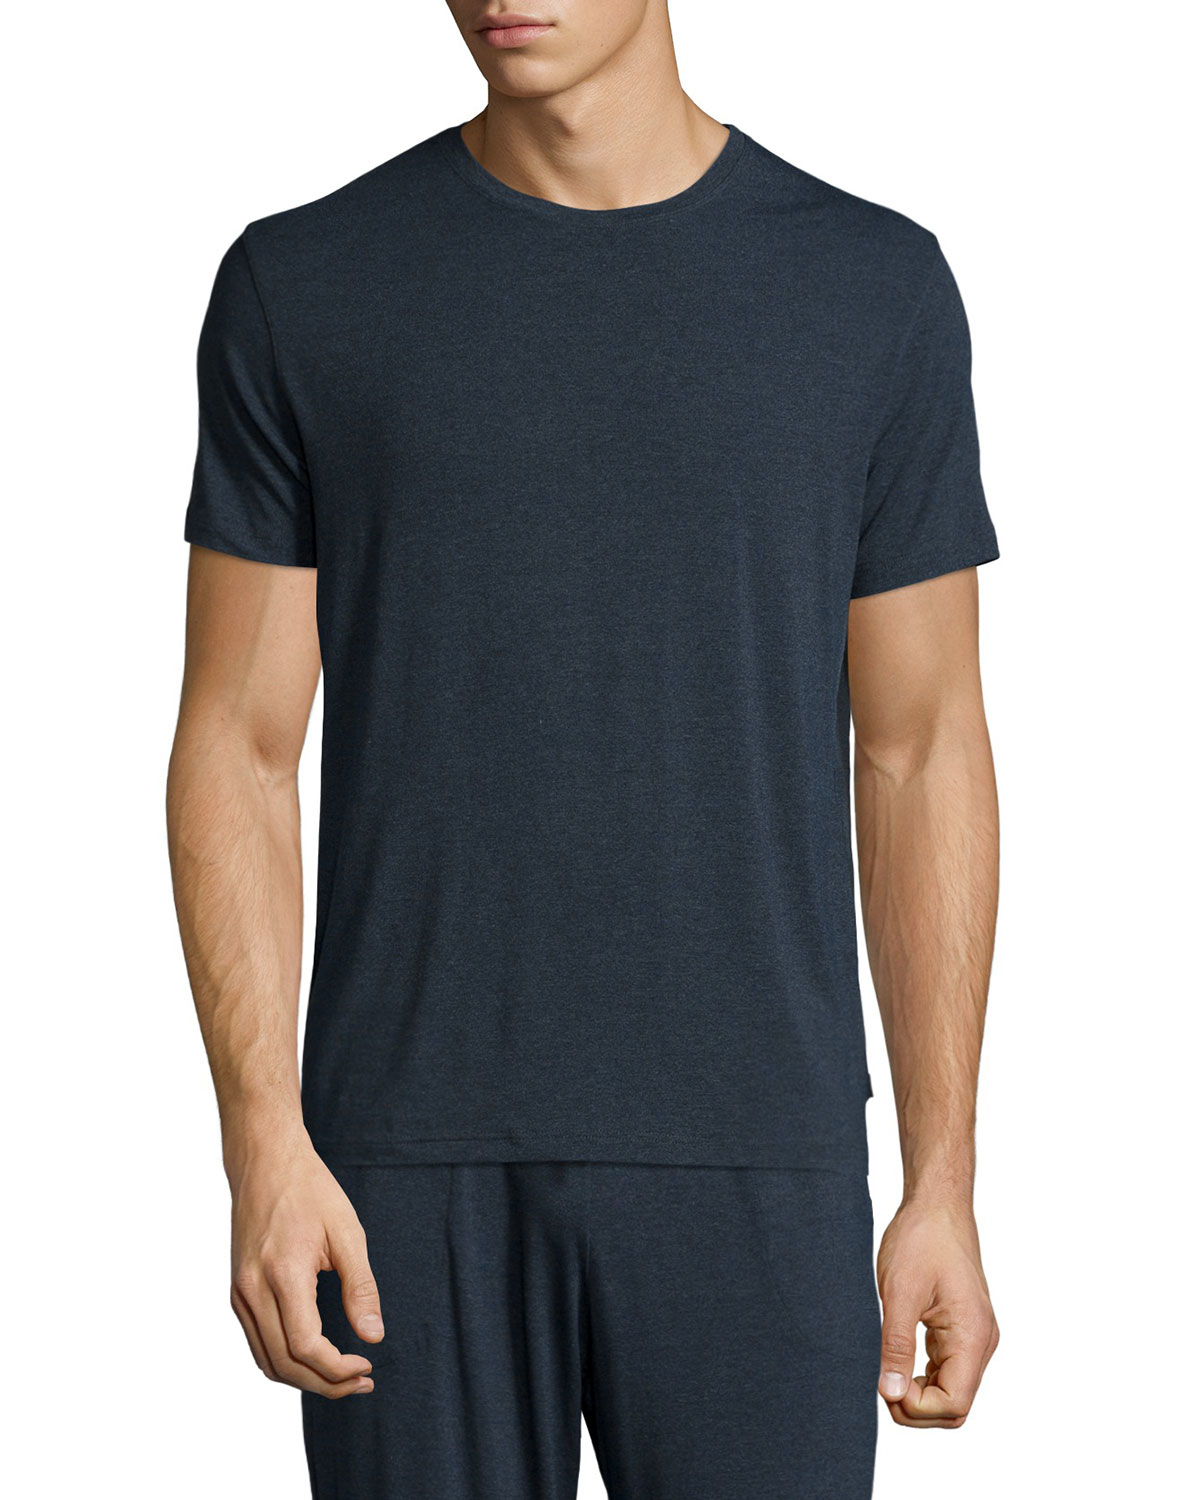 Derek rose crew neck modal blend t shirt in gray for men for Modal t shirts mens